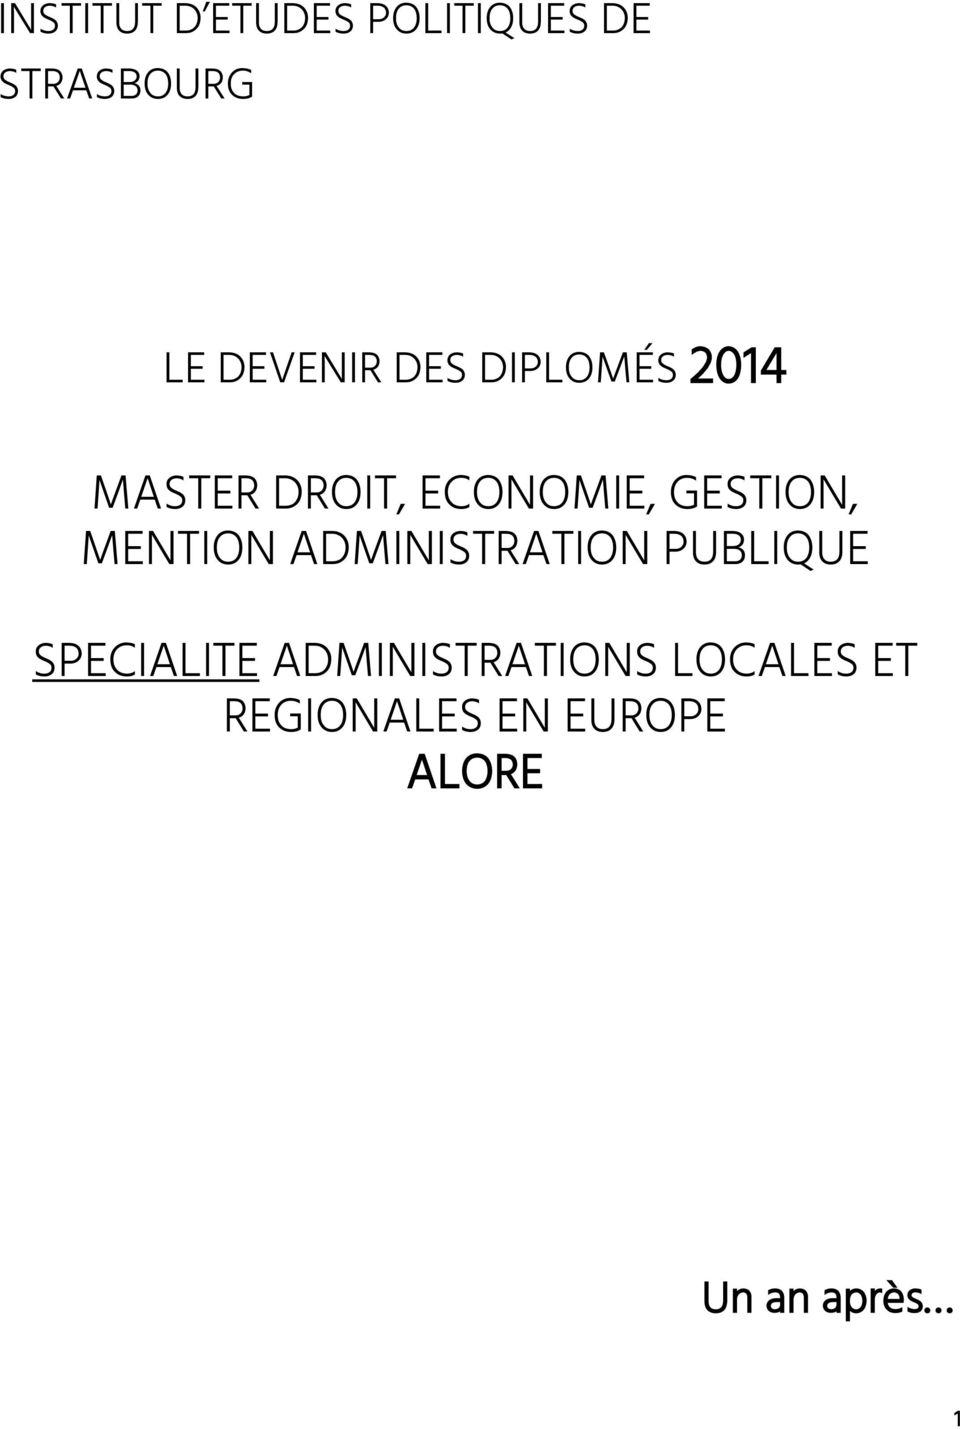 MENTION ADMINISTRATION PUBLIQUE SPECIALITE